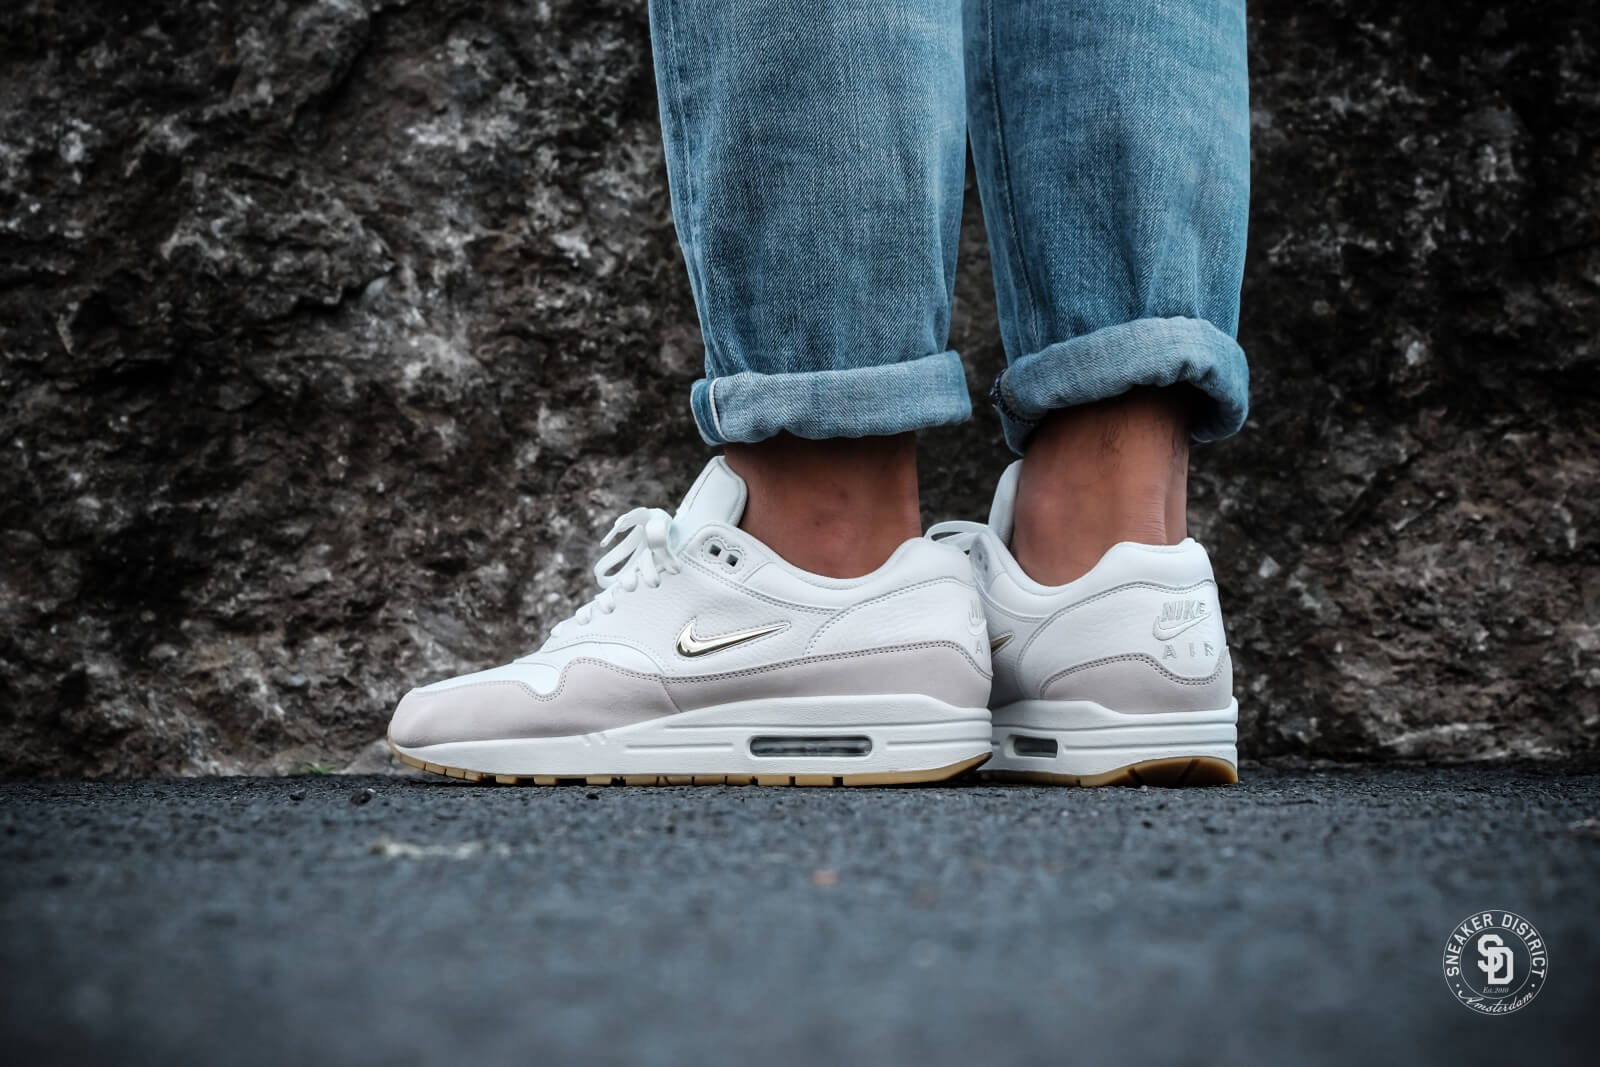 Nike WMNS Air Max 1 Premium SC Jewel Summit White/Metallic Gold